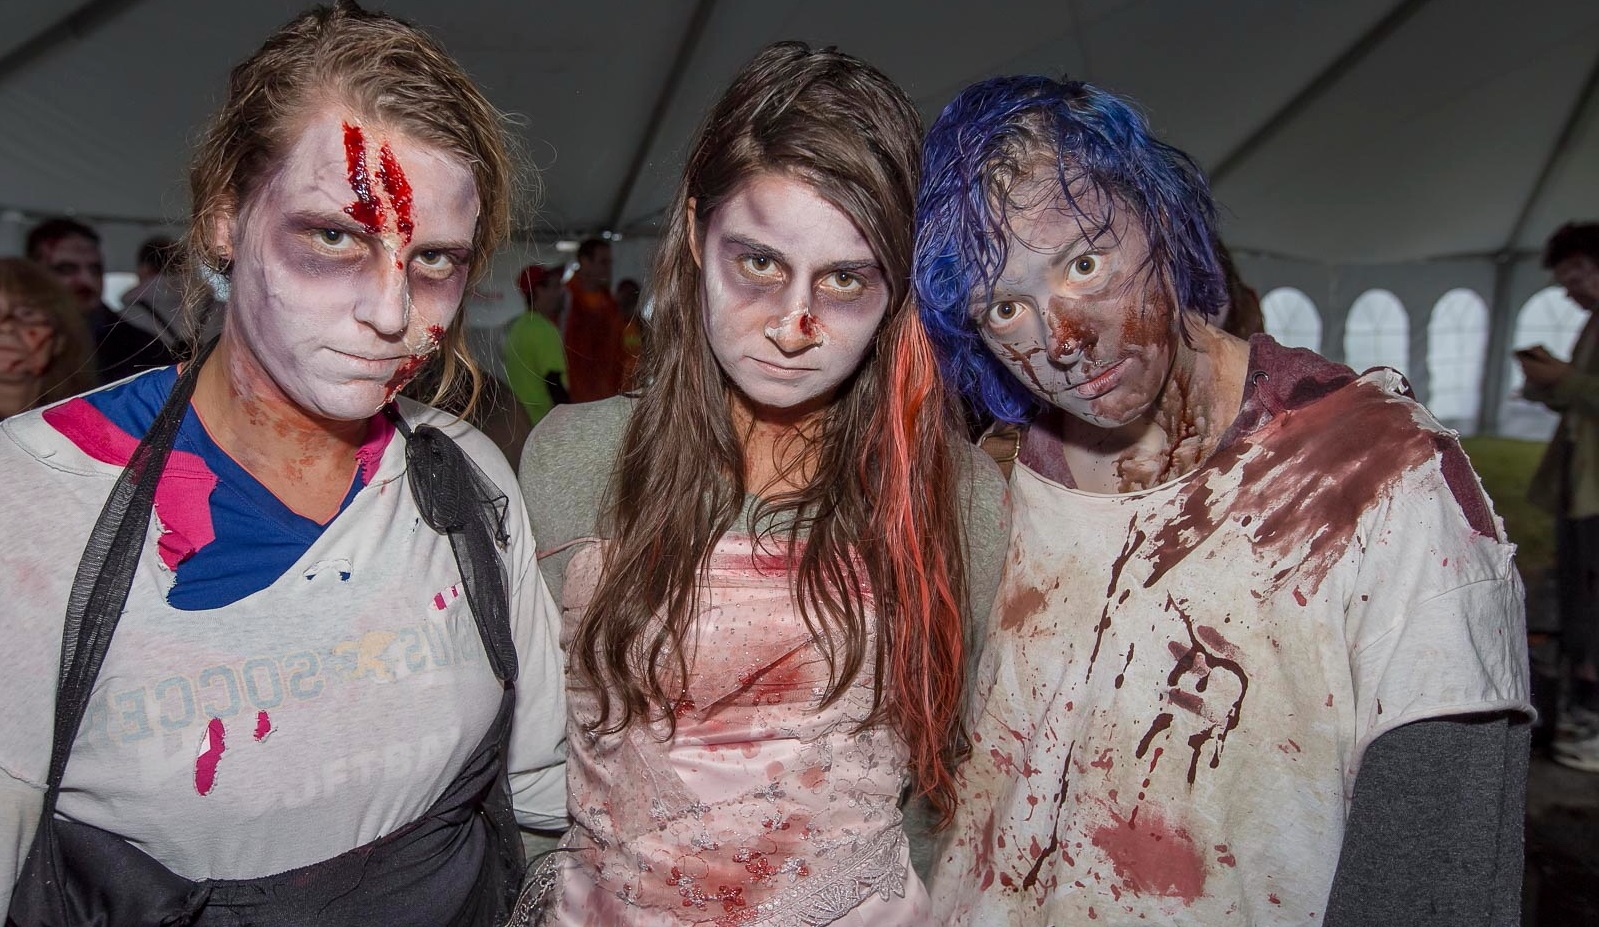 The 5K at the Great Pumpkin Farm in Clarence involves avoiding zombies. (Don Nieman/Special to The News)